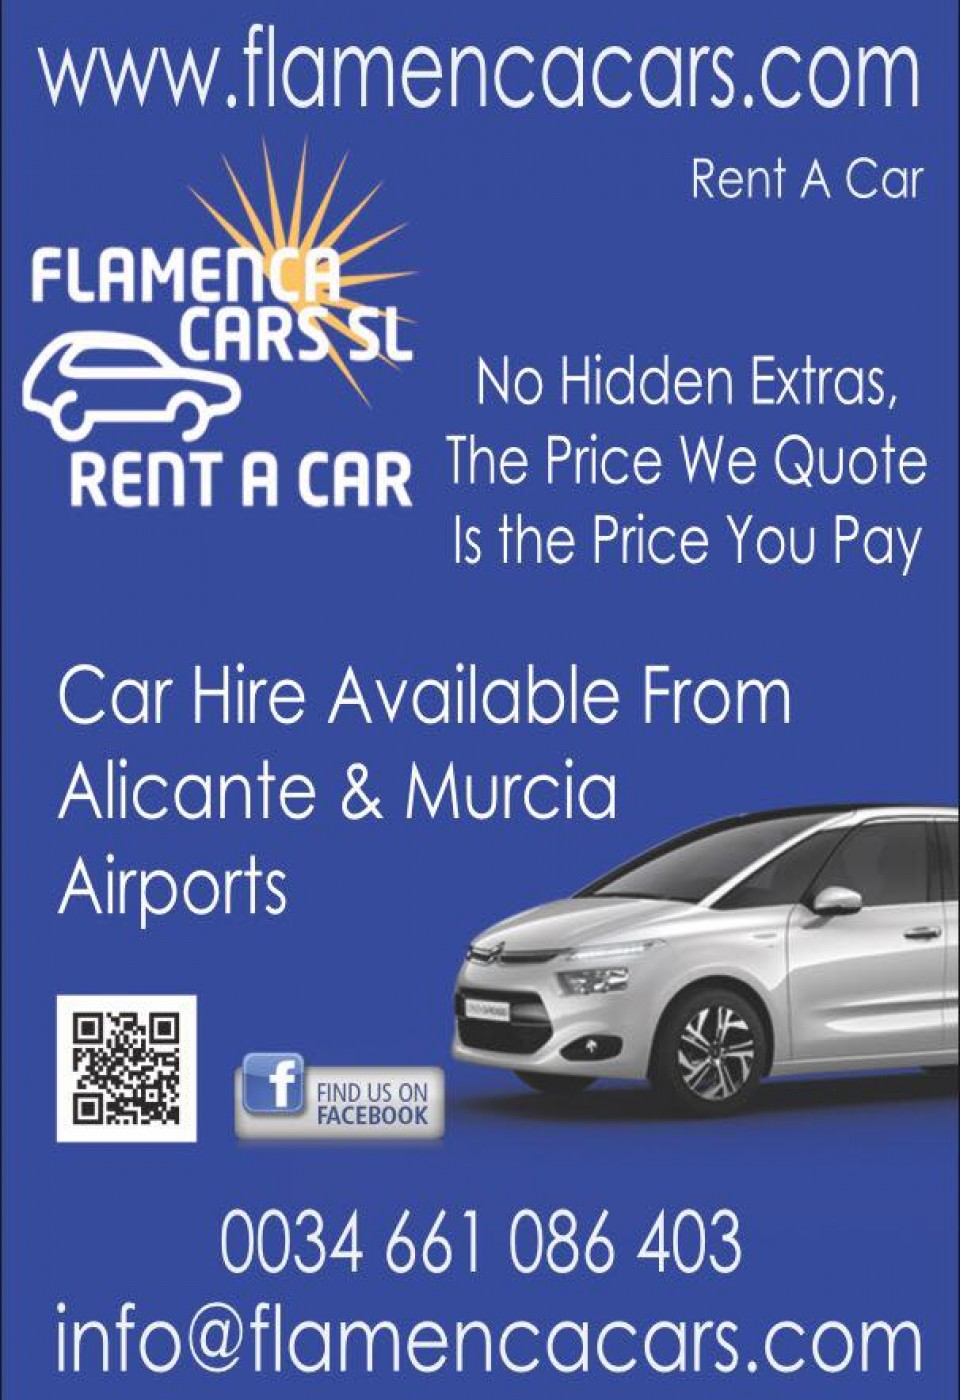 Flamenca Cars S.L. Car Hire at Alicante and Murcia Airports